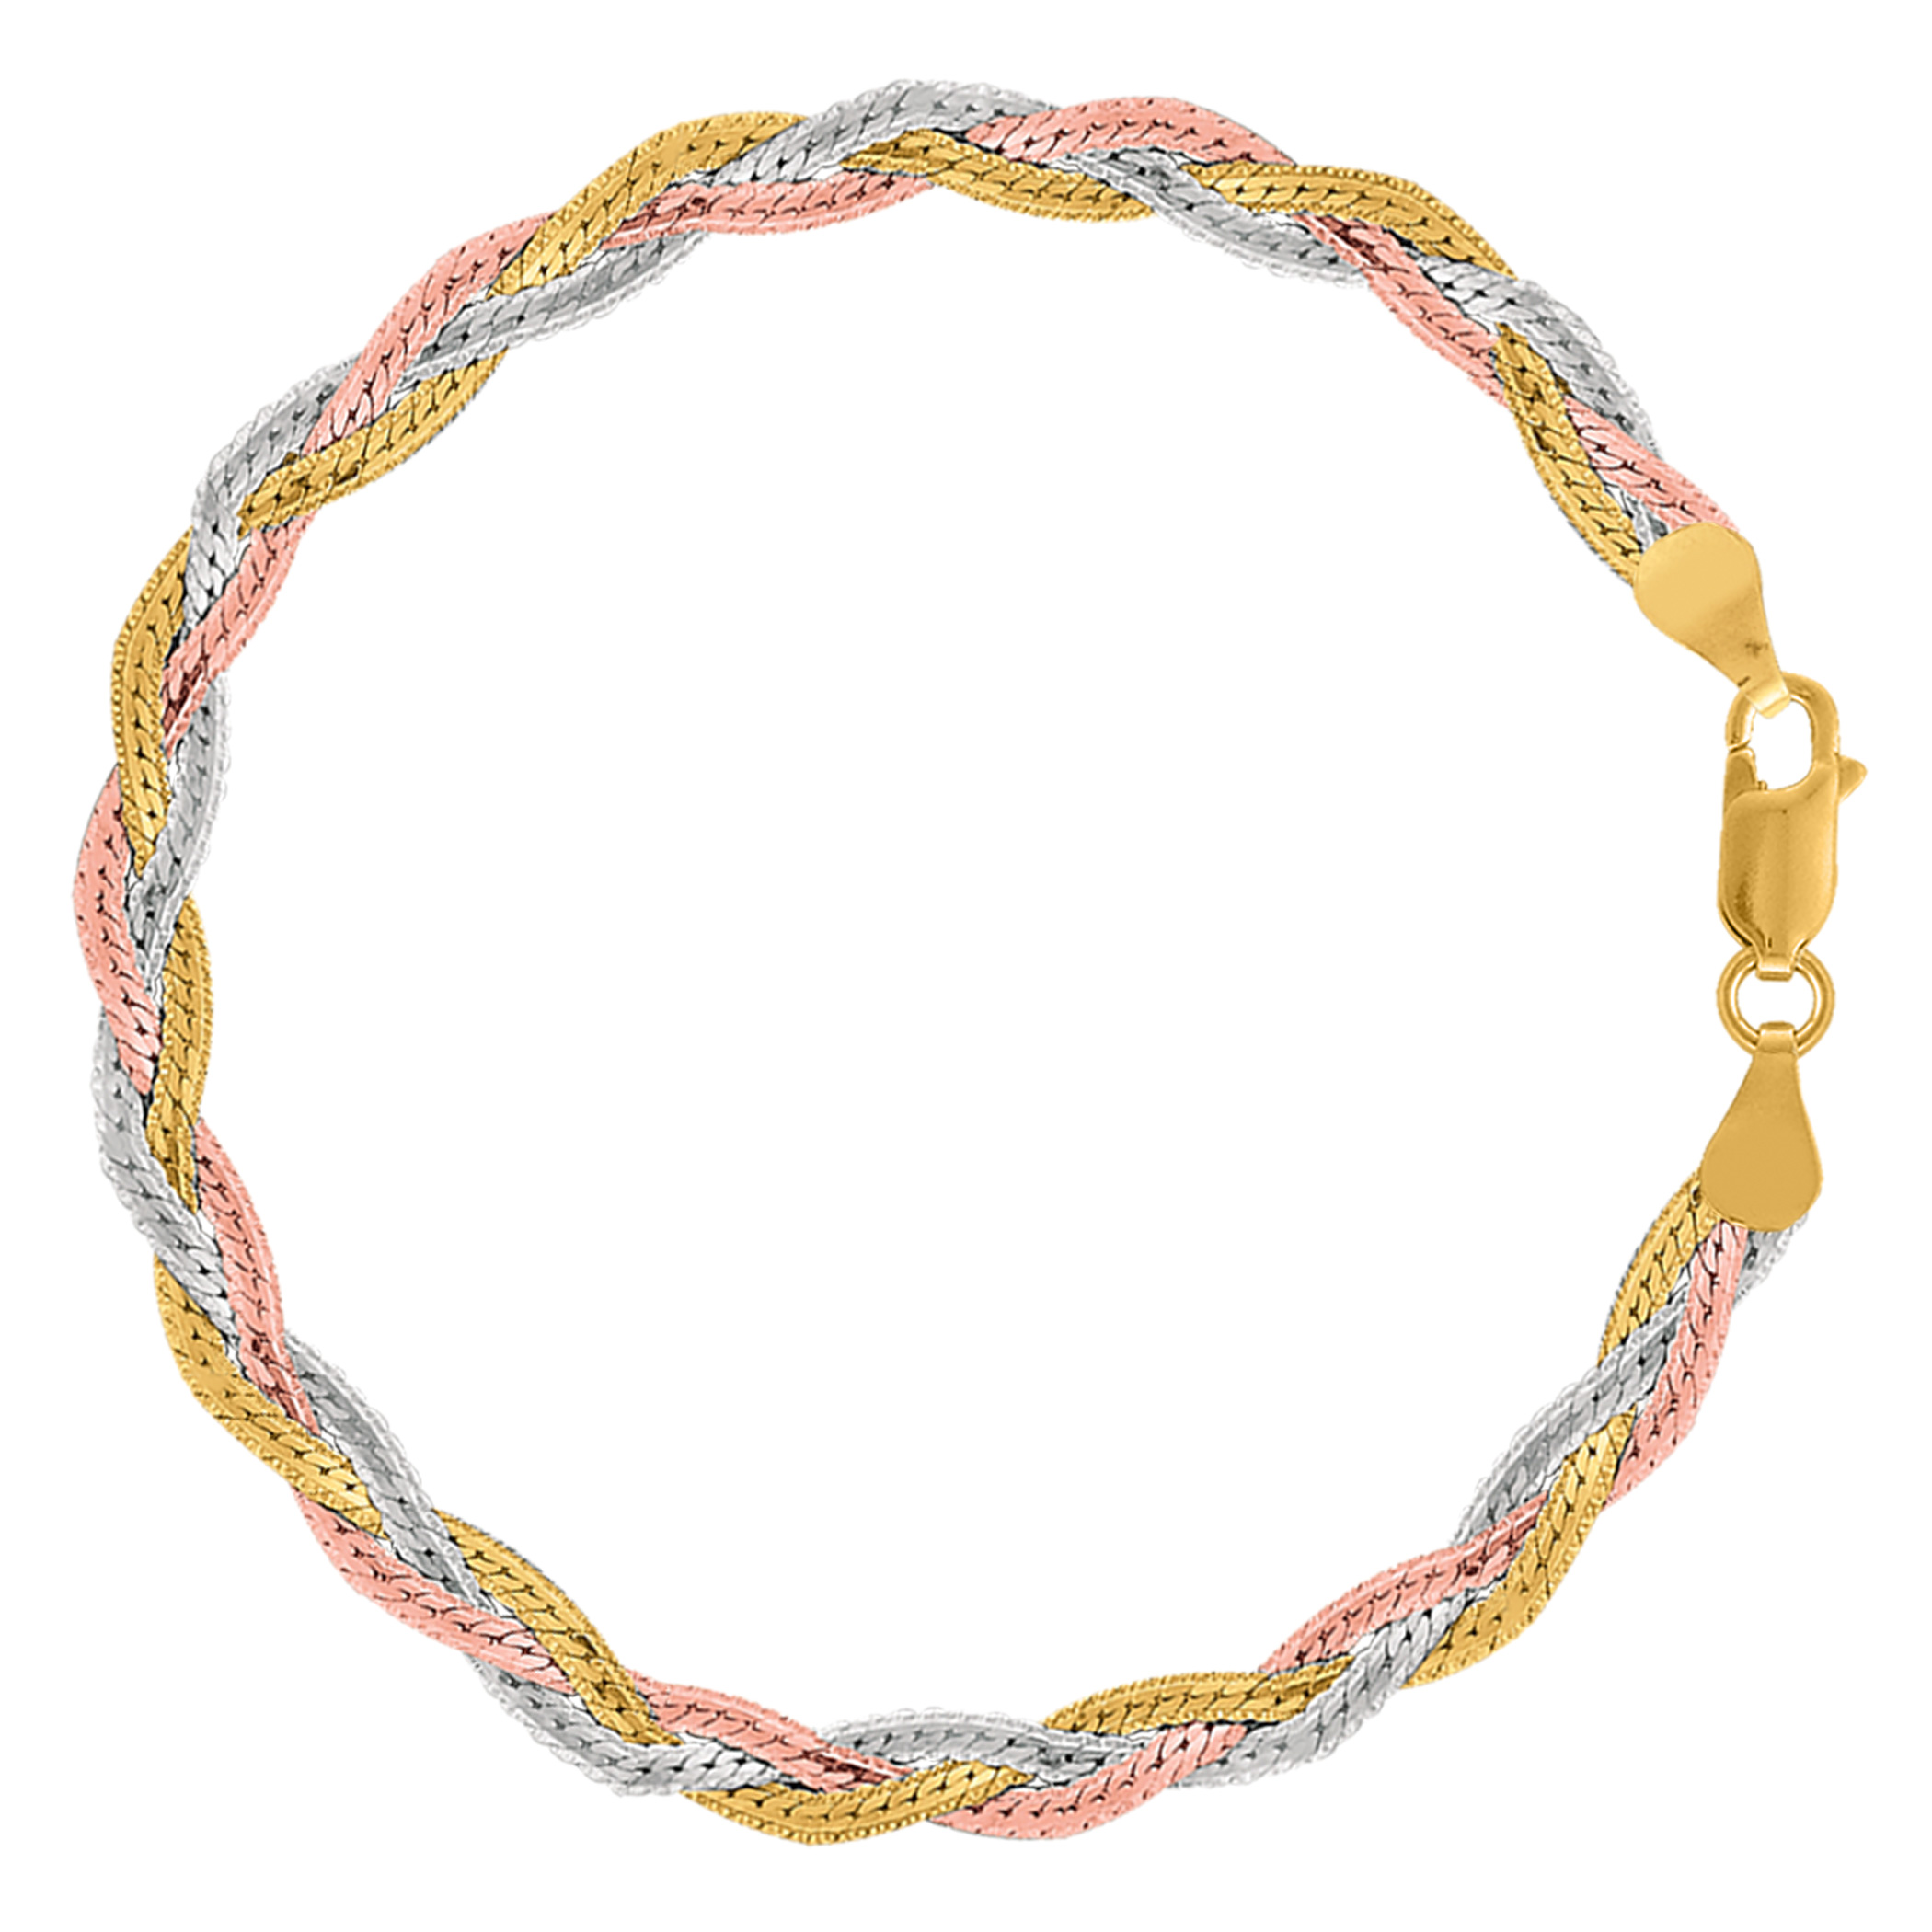 Tricolor Braided Snake Chain Anklet In Sterling Silver, 10″